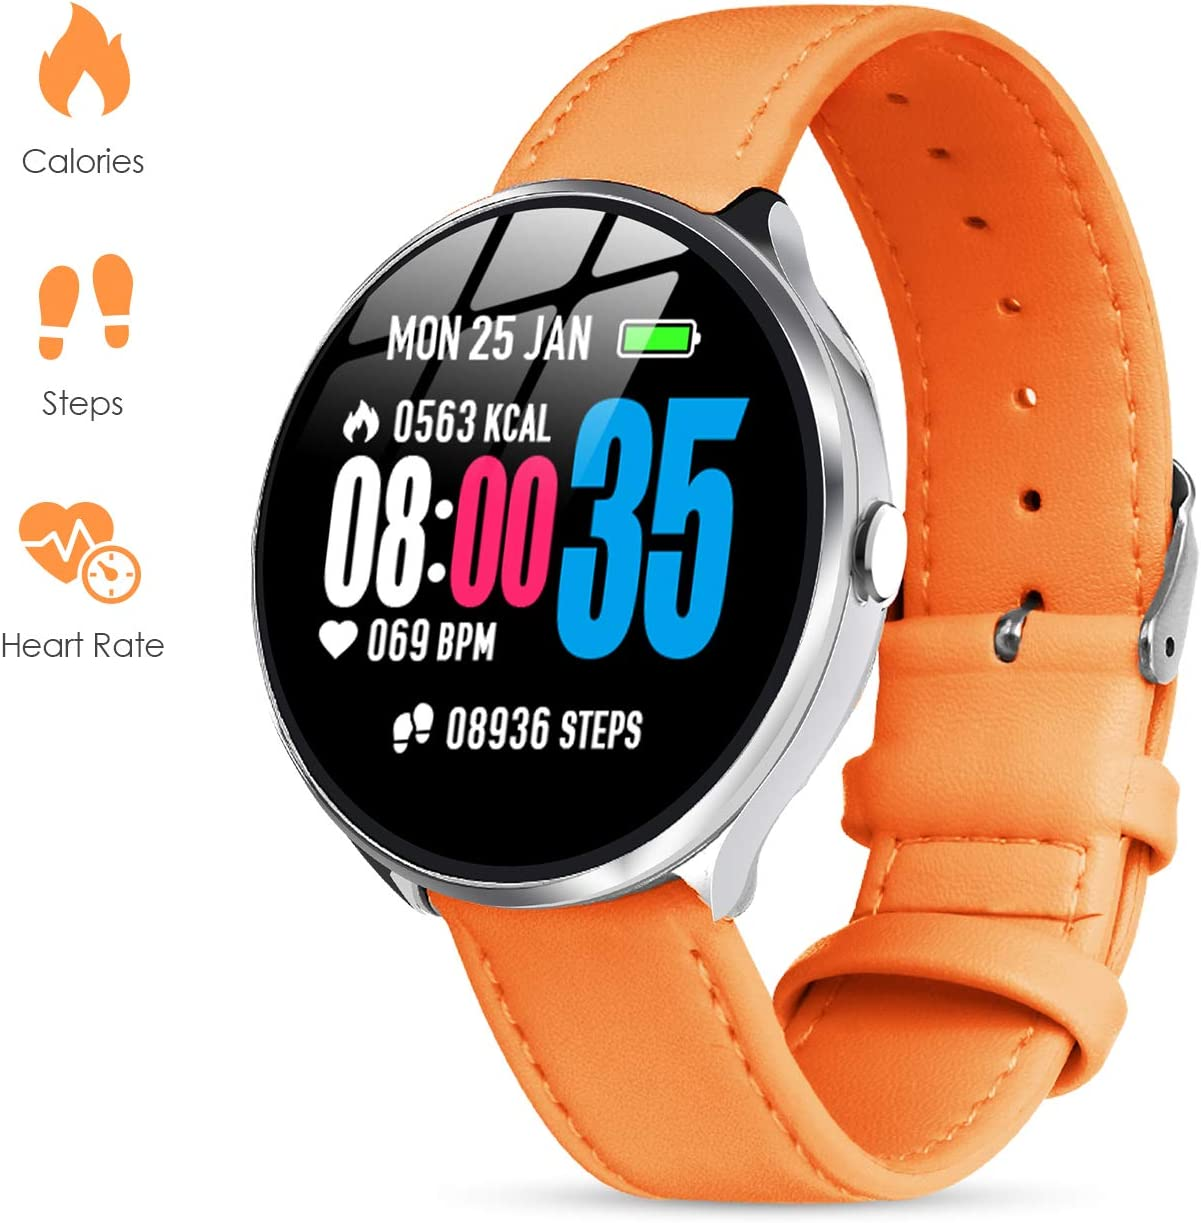 GOKOO Smart Watch for Women with All-Day Heart Rate Blood Pressure Sleep Monitor Waterproof Calorie Counter Step Reminder 1.3 inch Touchscreen Leather (Orange)